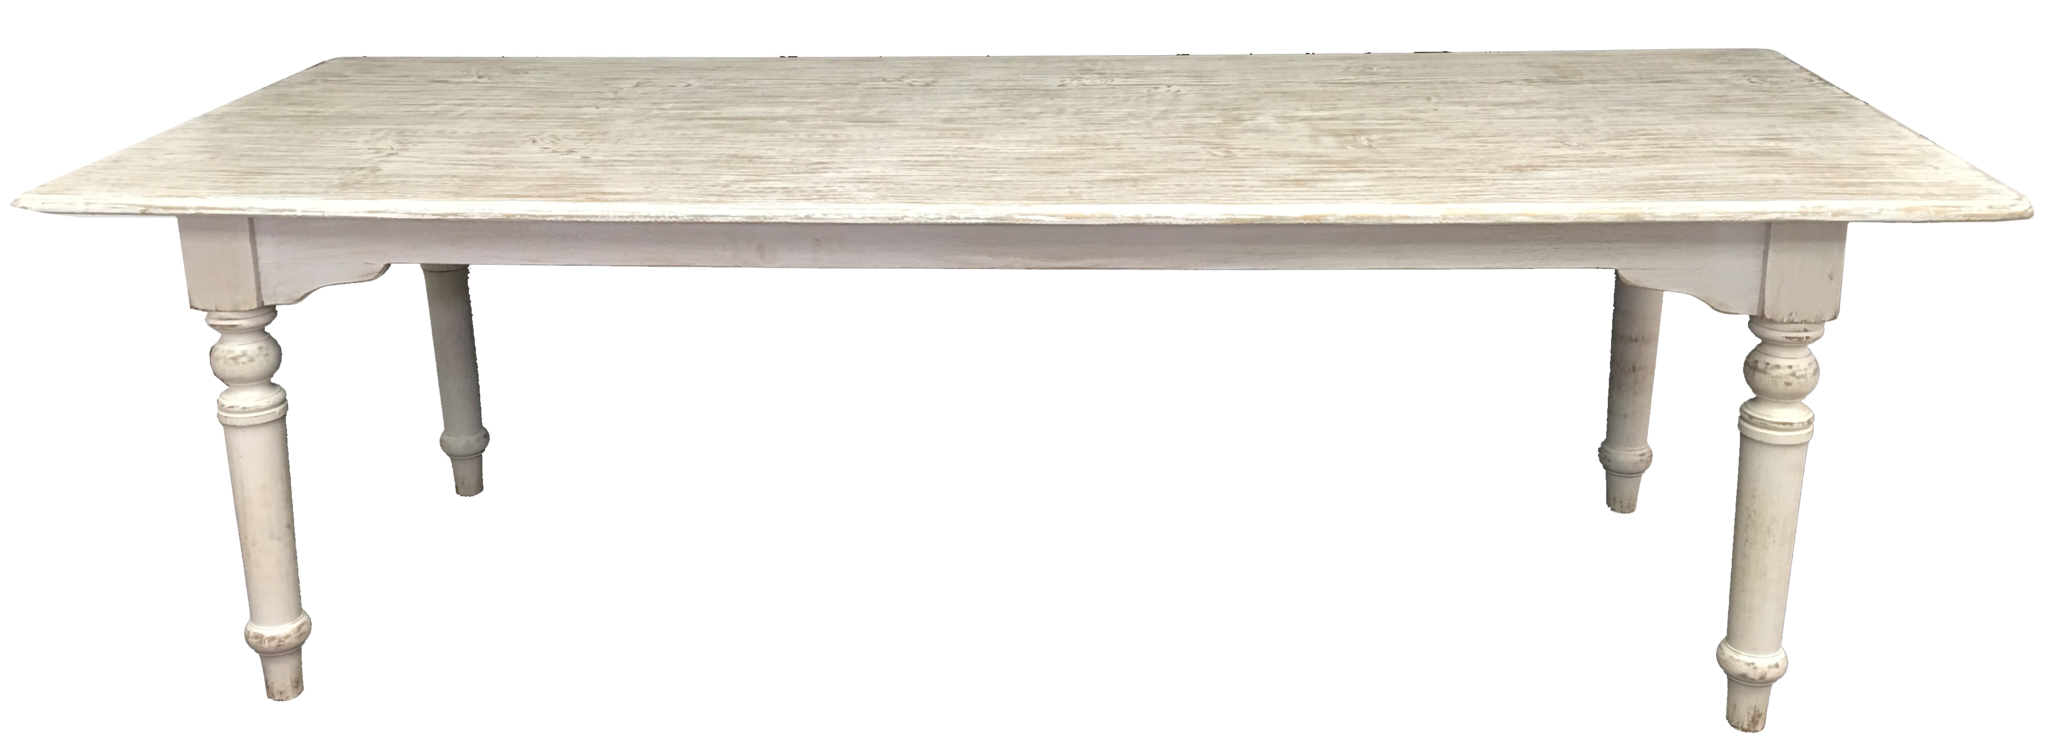 White Wash Oval Pine Dining Table   Paul Michael Company   1